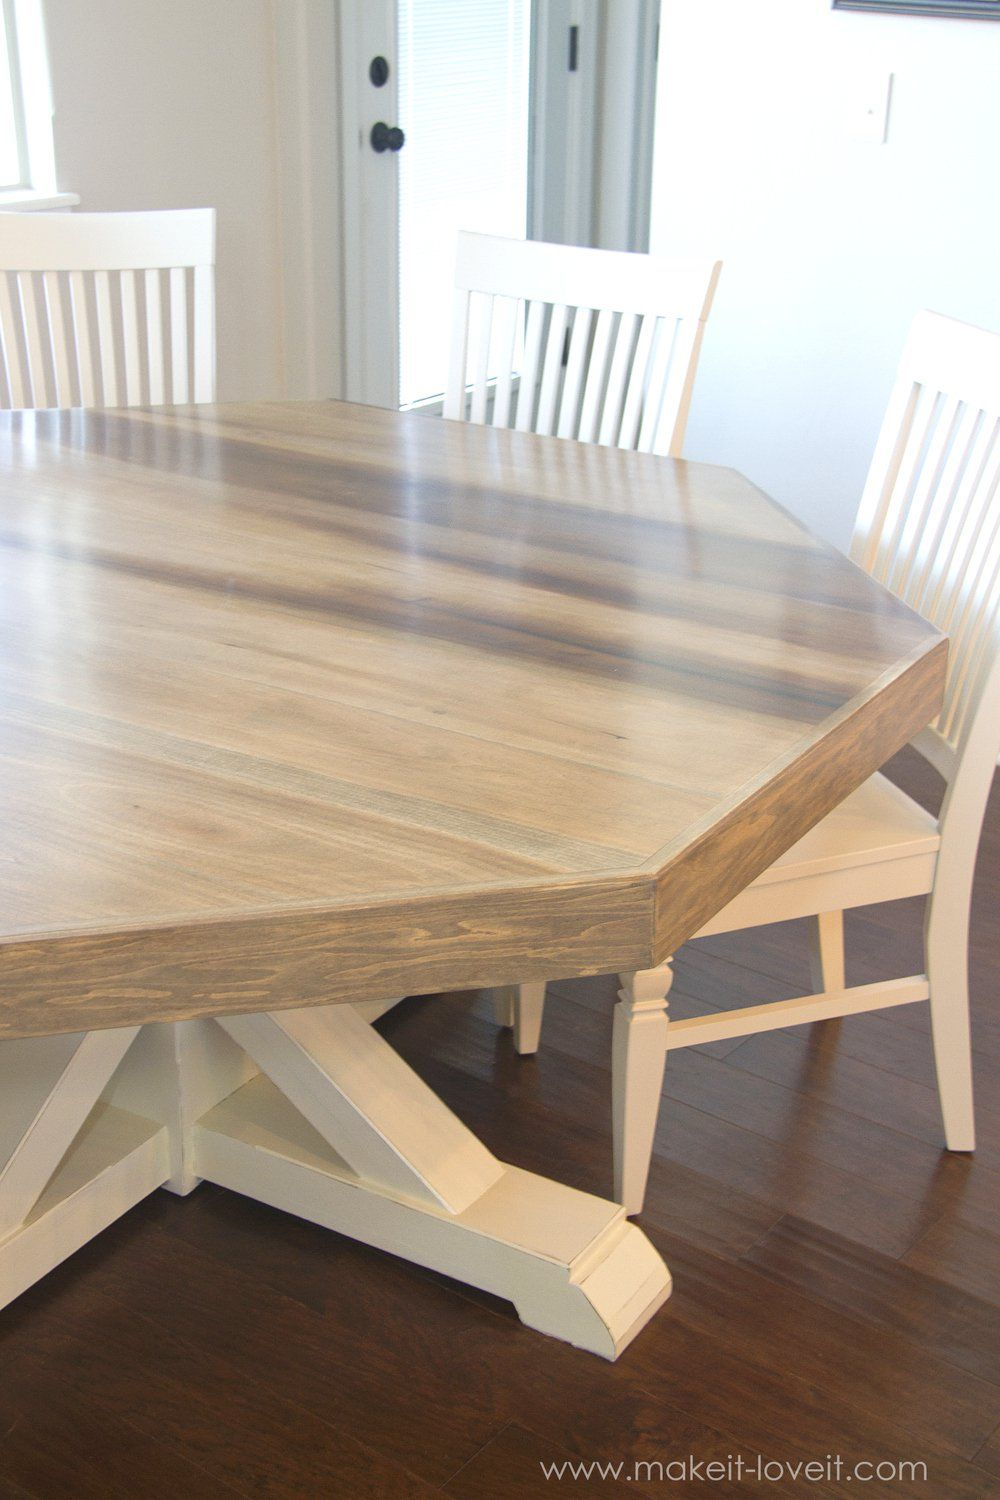 Dining Room Table Round Seats 8 Magnificent Diy Octagon Dining Room Tablewith A Farmhouse Baseseats 8 Inspiration Design